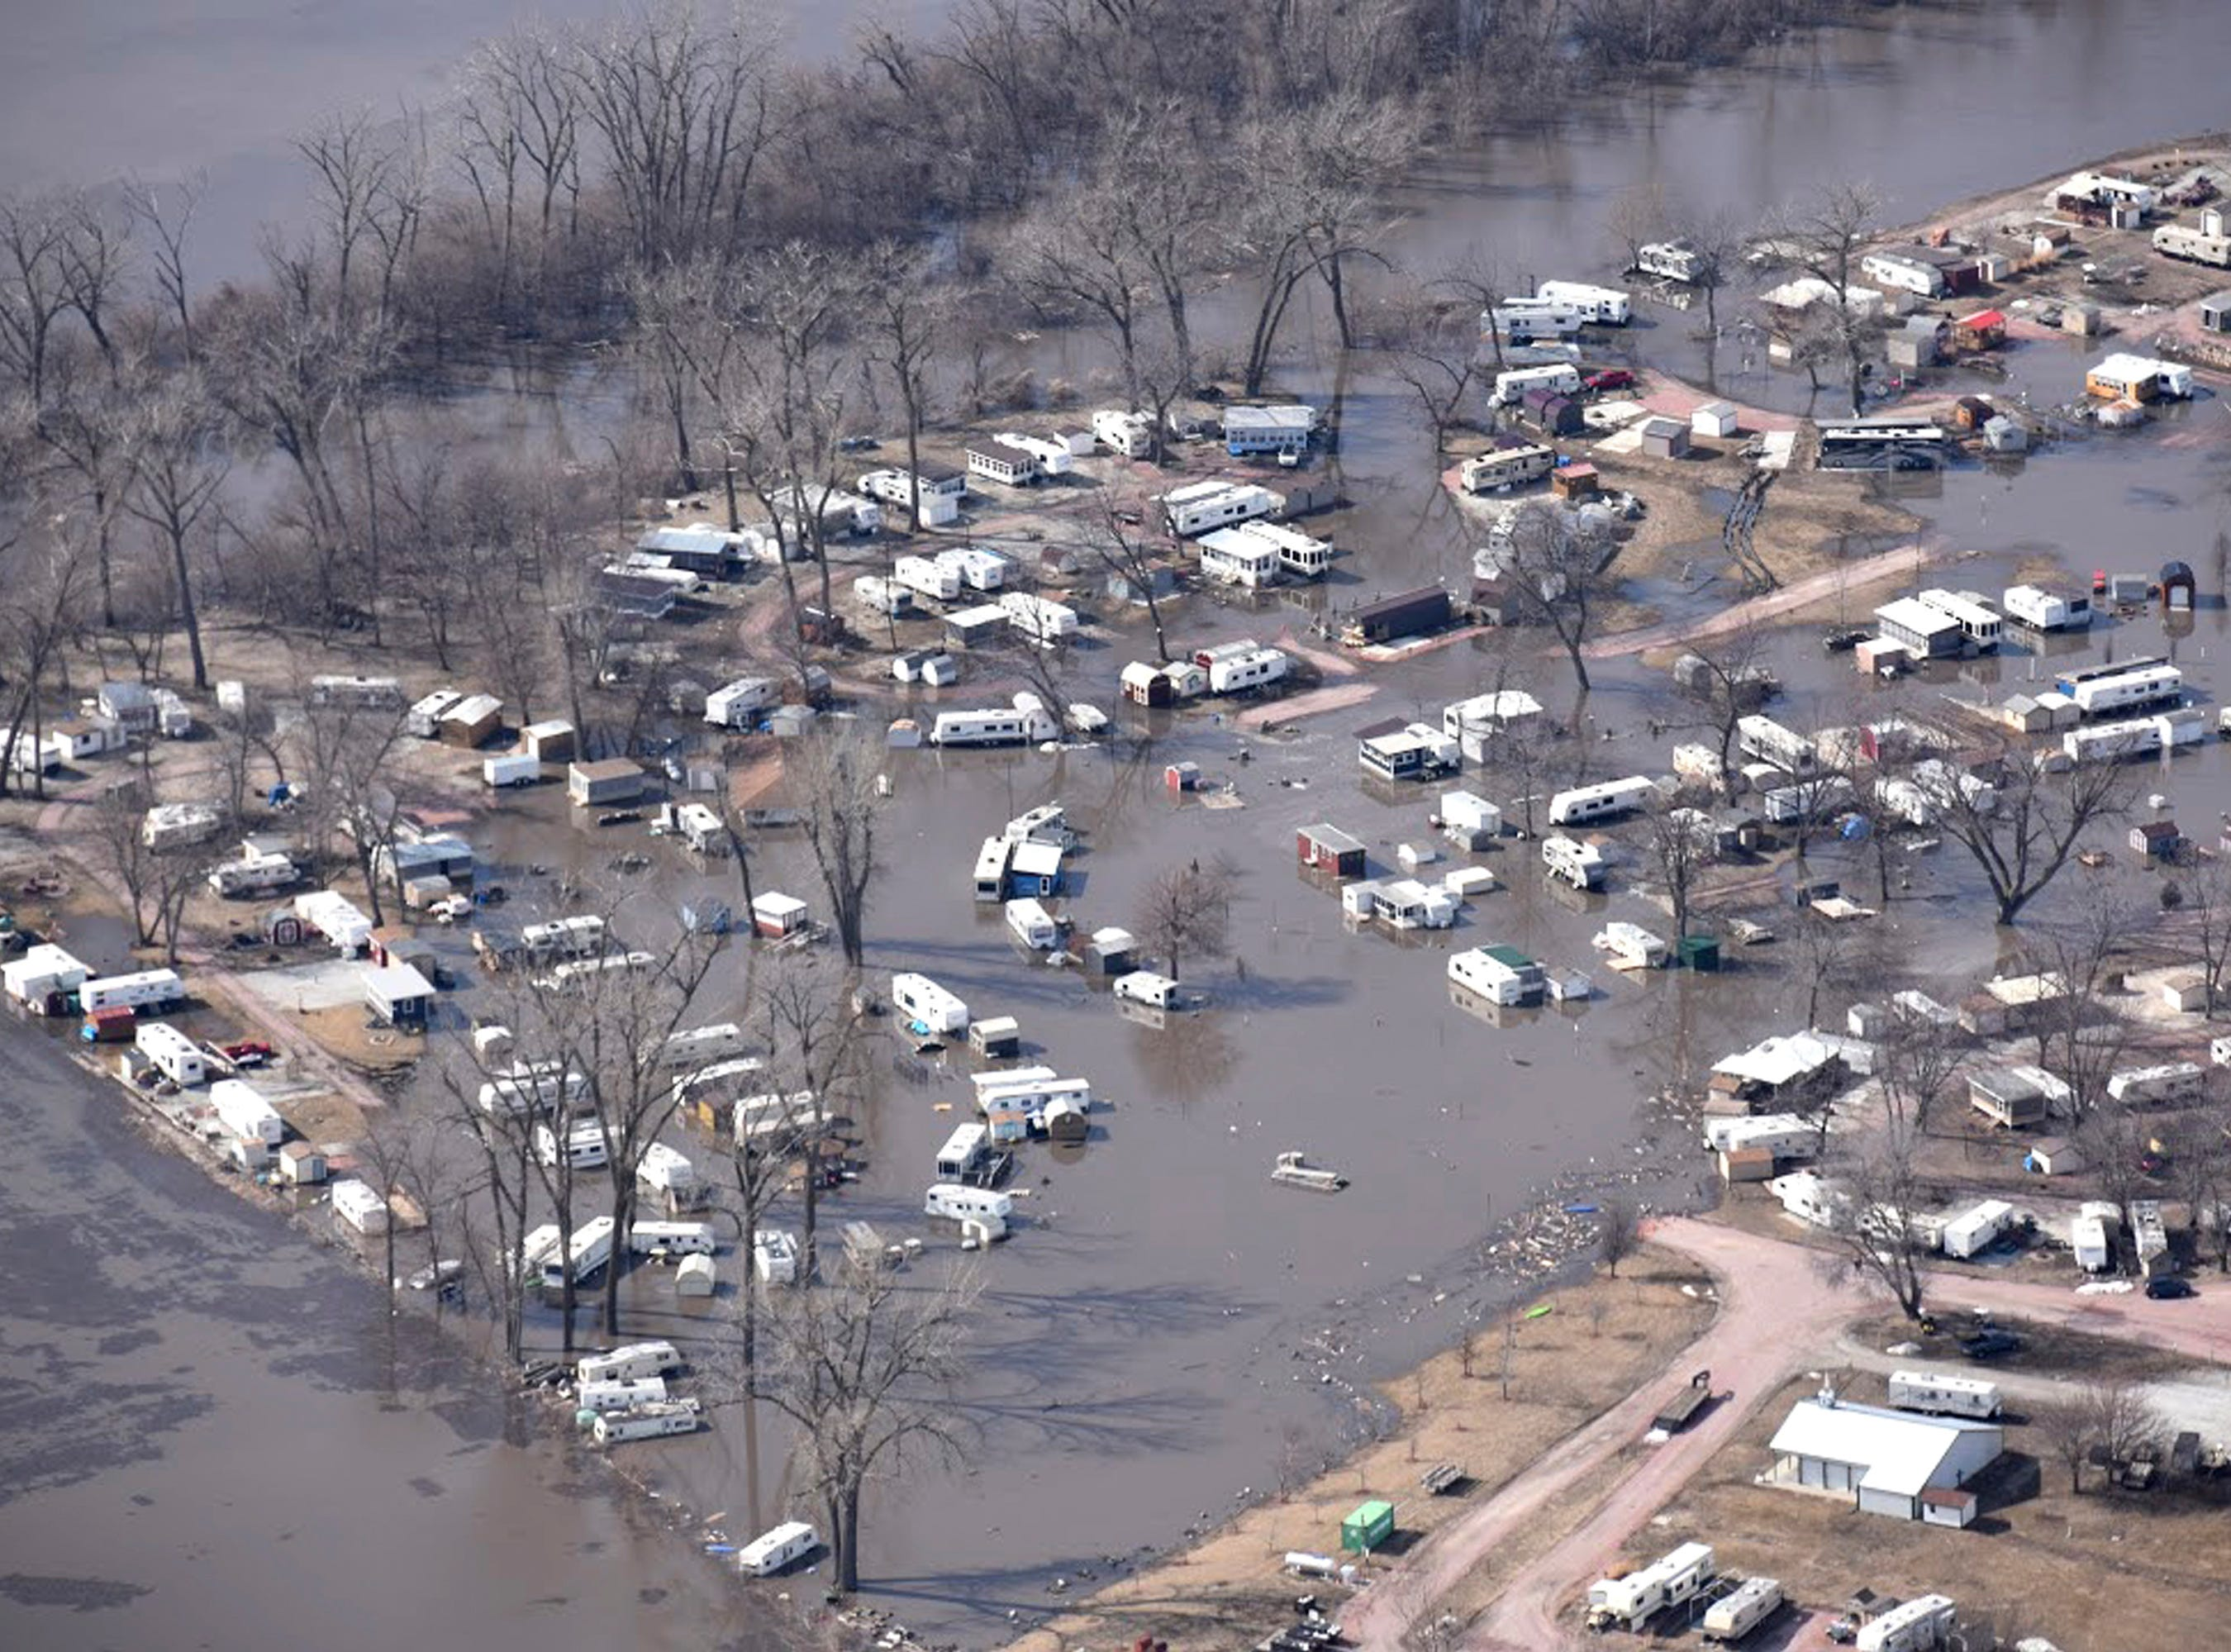 In this Monday, March 18, 2019, photo taken by the South Dakota Civil Air Patrol and provided by the Iowa Department of Homeland Security and Emergency Management, shows flooding along the Missouri River in River Sioux, Iowa.